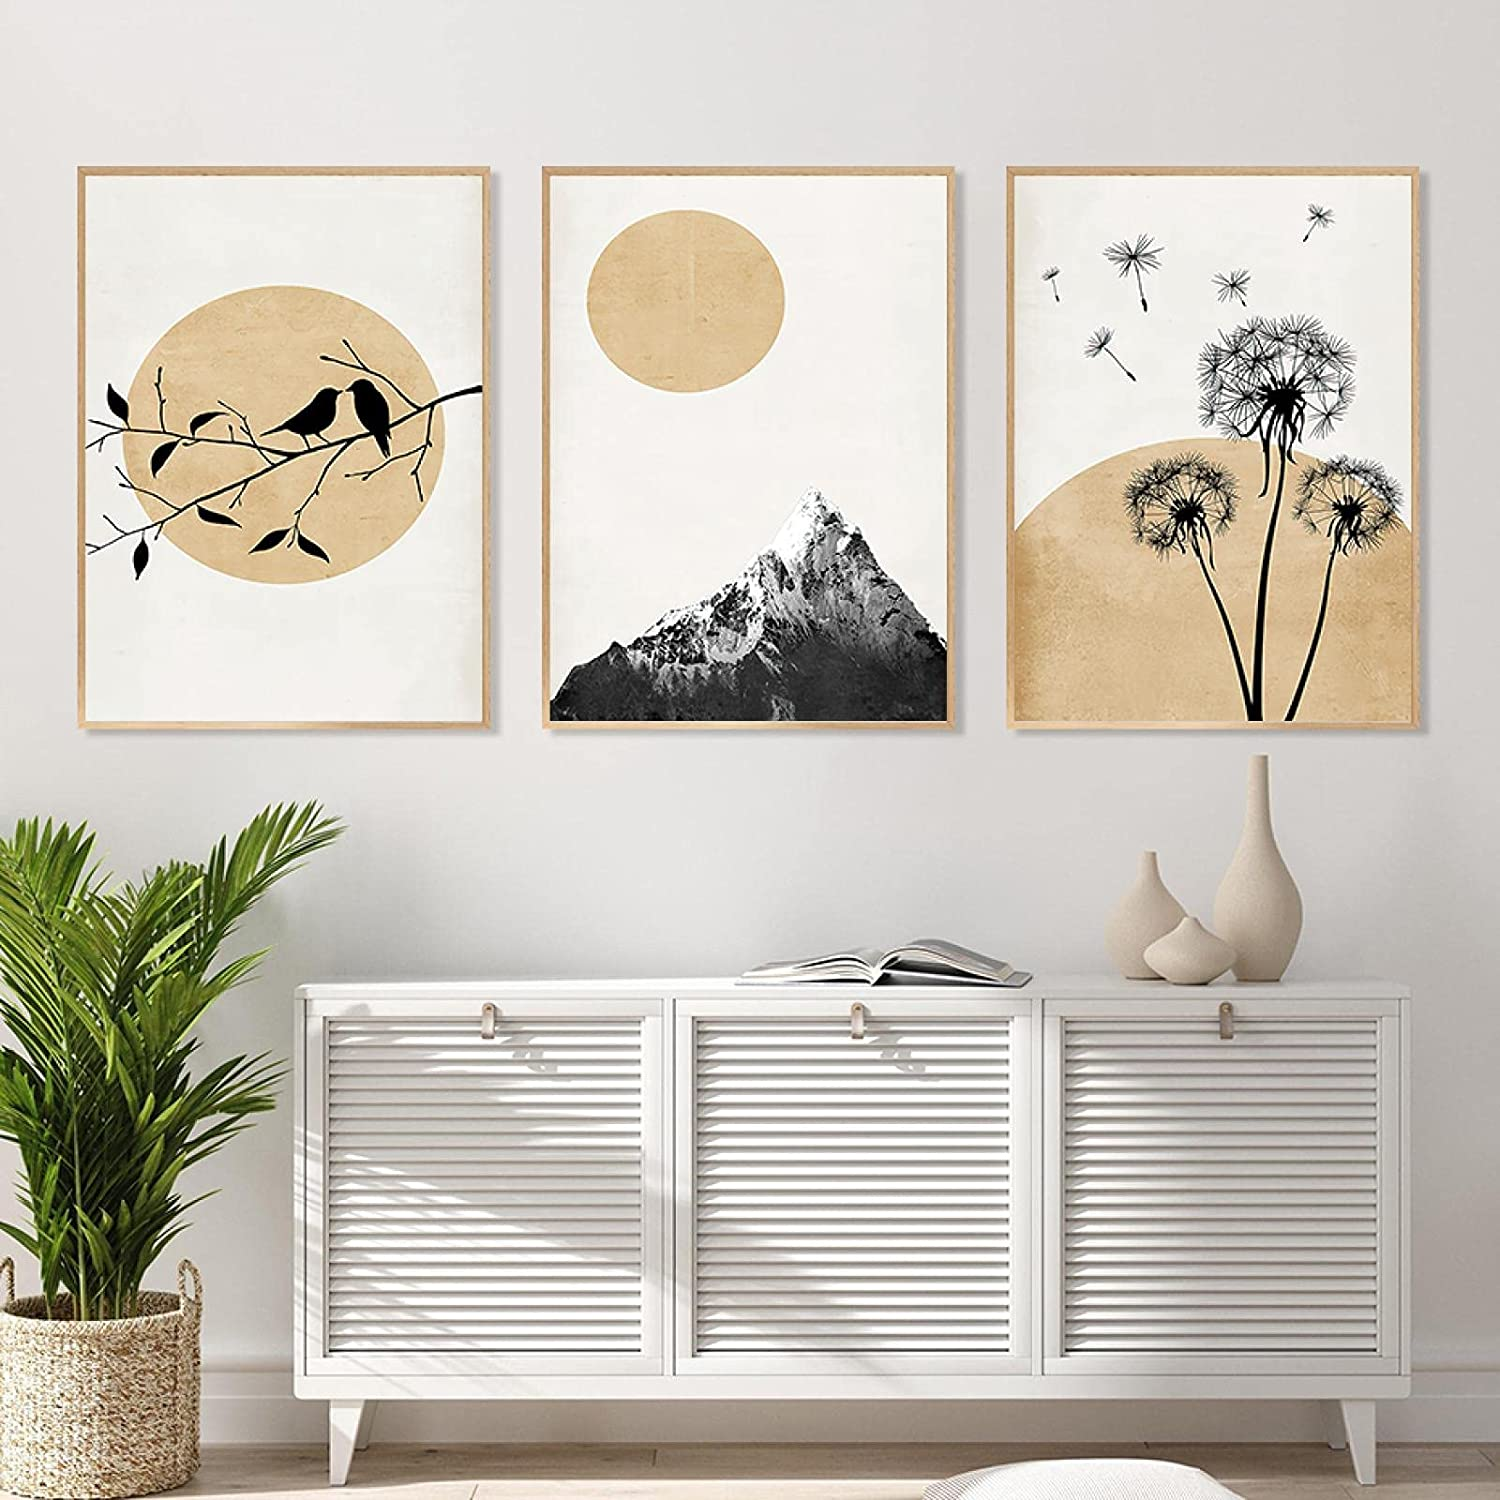 Wall Art Canvas Painting Beautiful 25% OFF Golden Mount Shipping included Poster Landscape